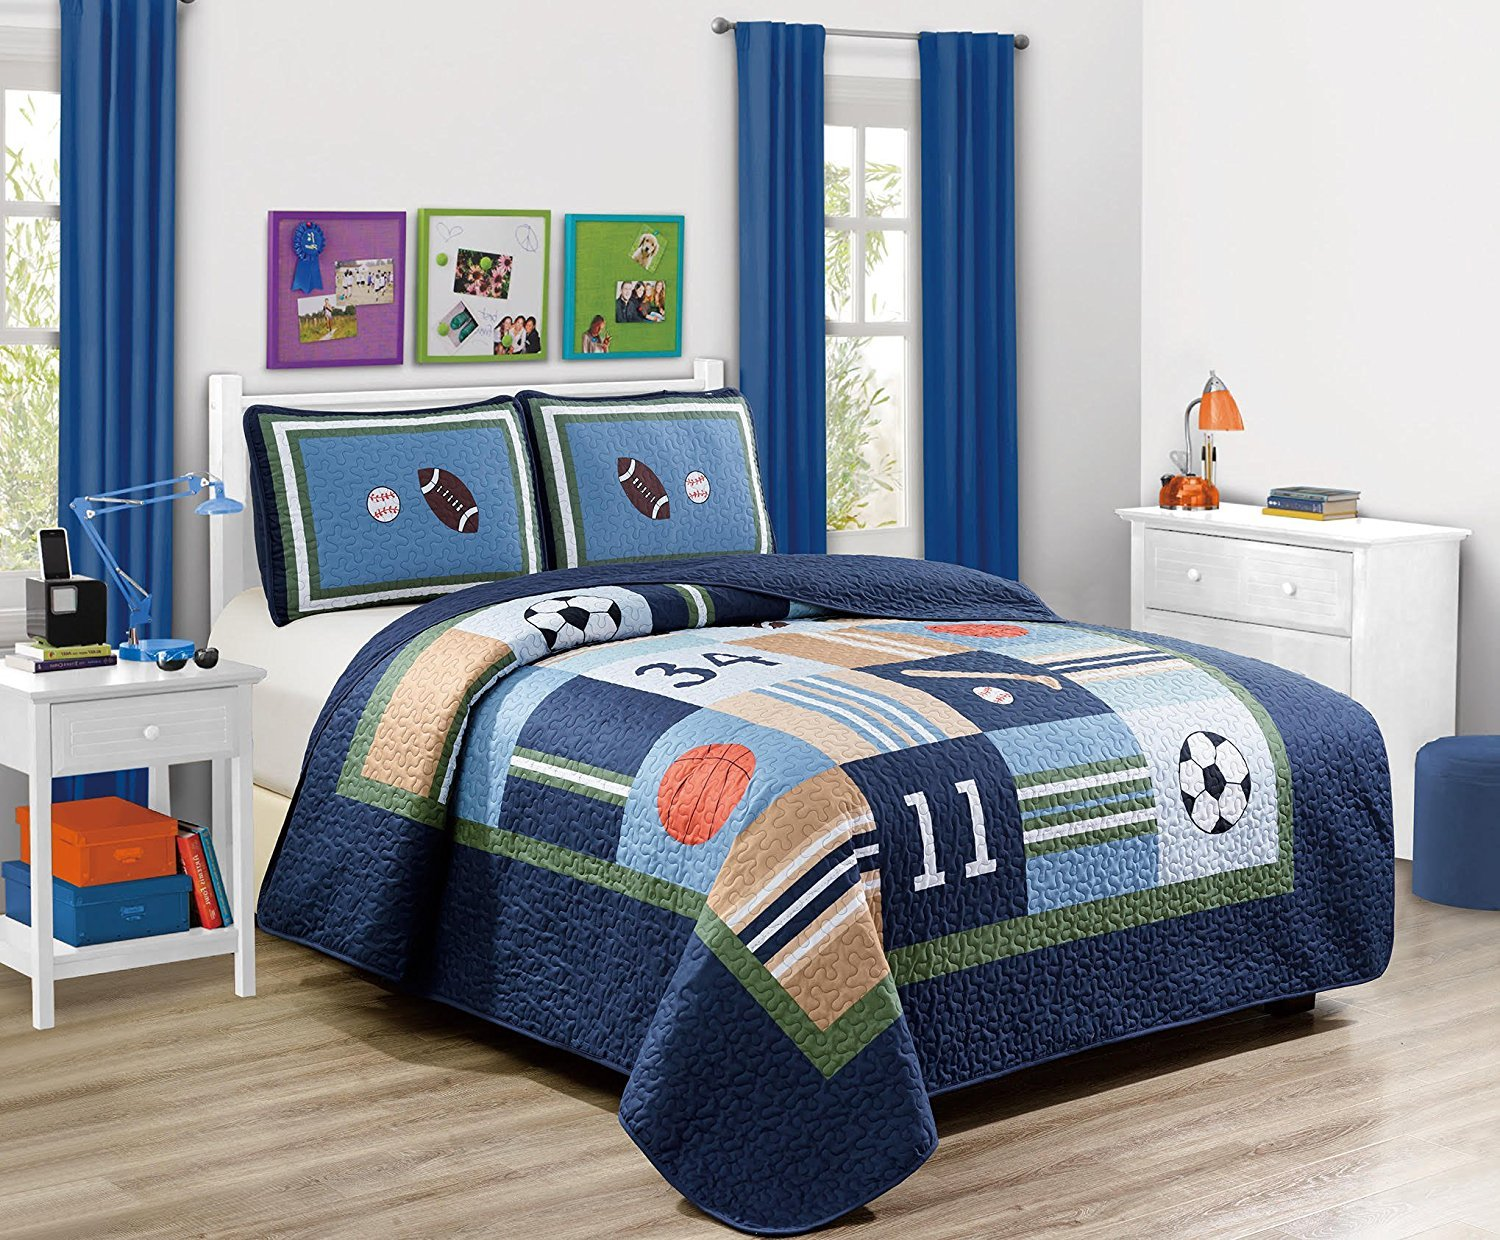 MK Home 3pc Full Size Quilted Bedspread Sport Navy Blue Green White Orange Brown Boys/Teens Football Basketball Baseball Soccer New